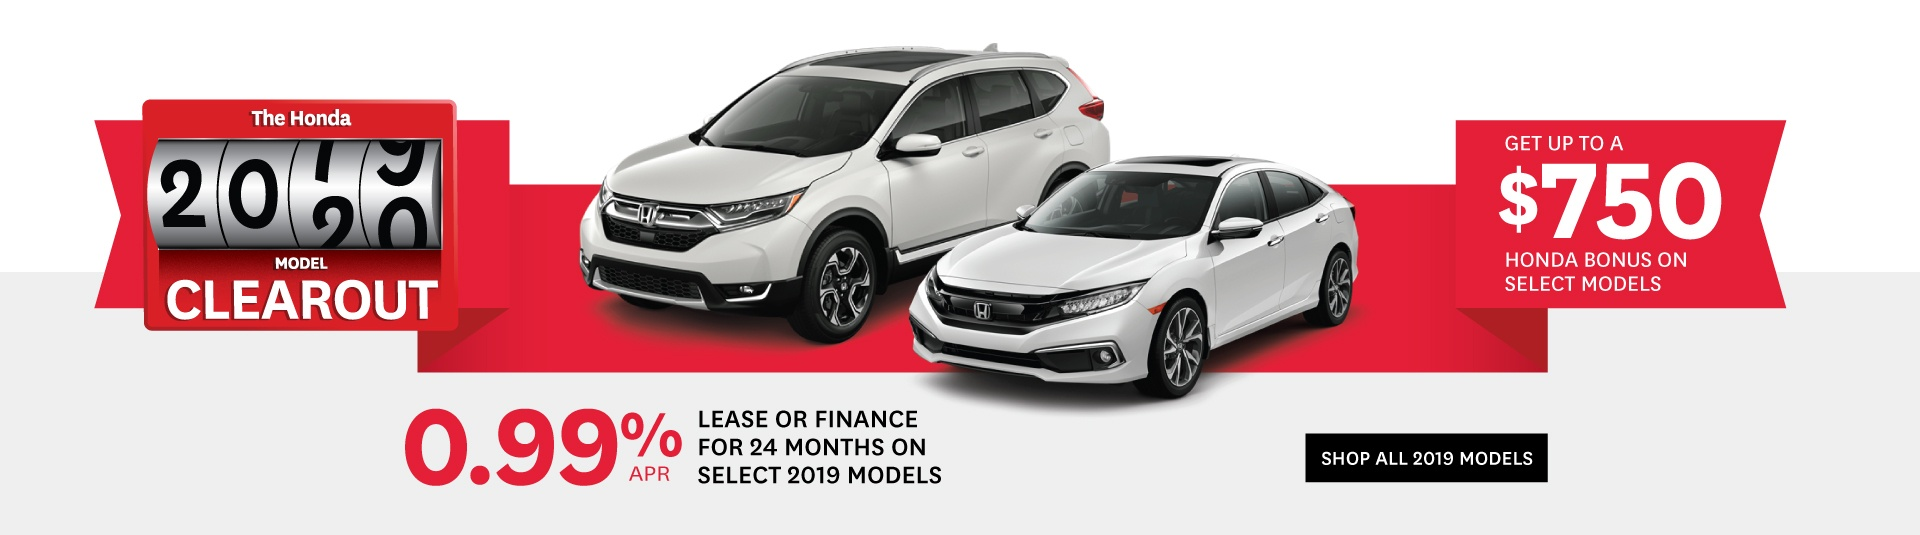 Orangeville Honda 2019 Model Clearout